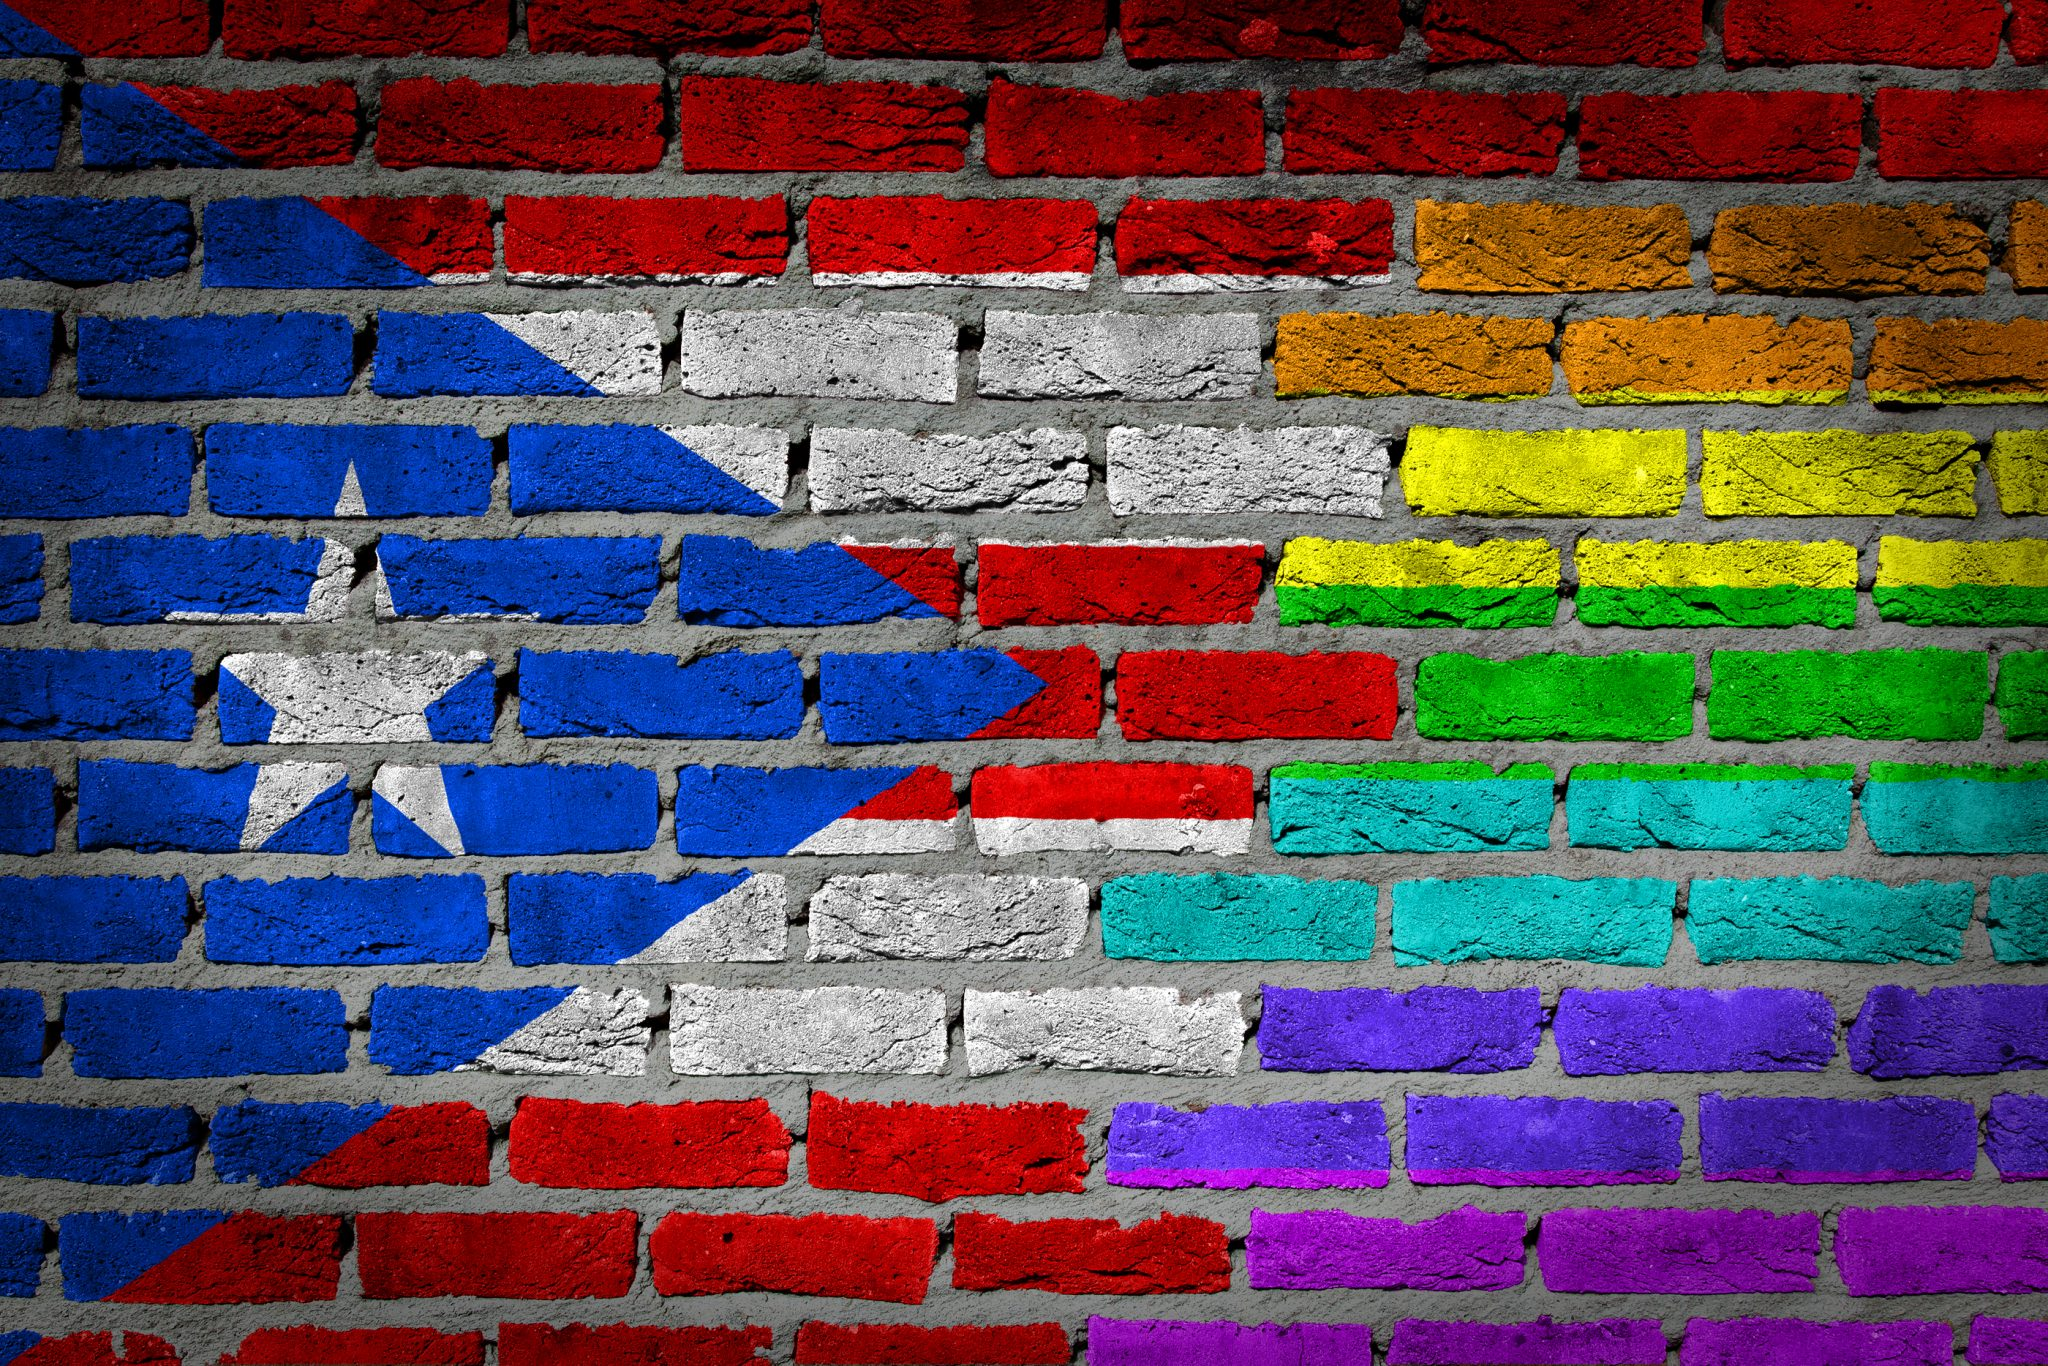 Puerto Rico Begins Allowing Transgender People To Change Their Birth